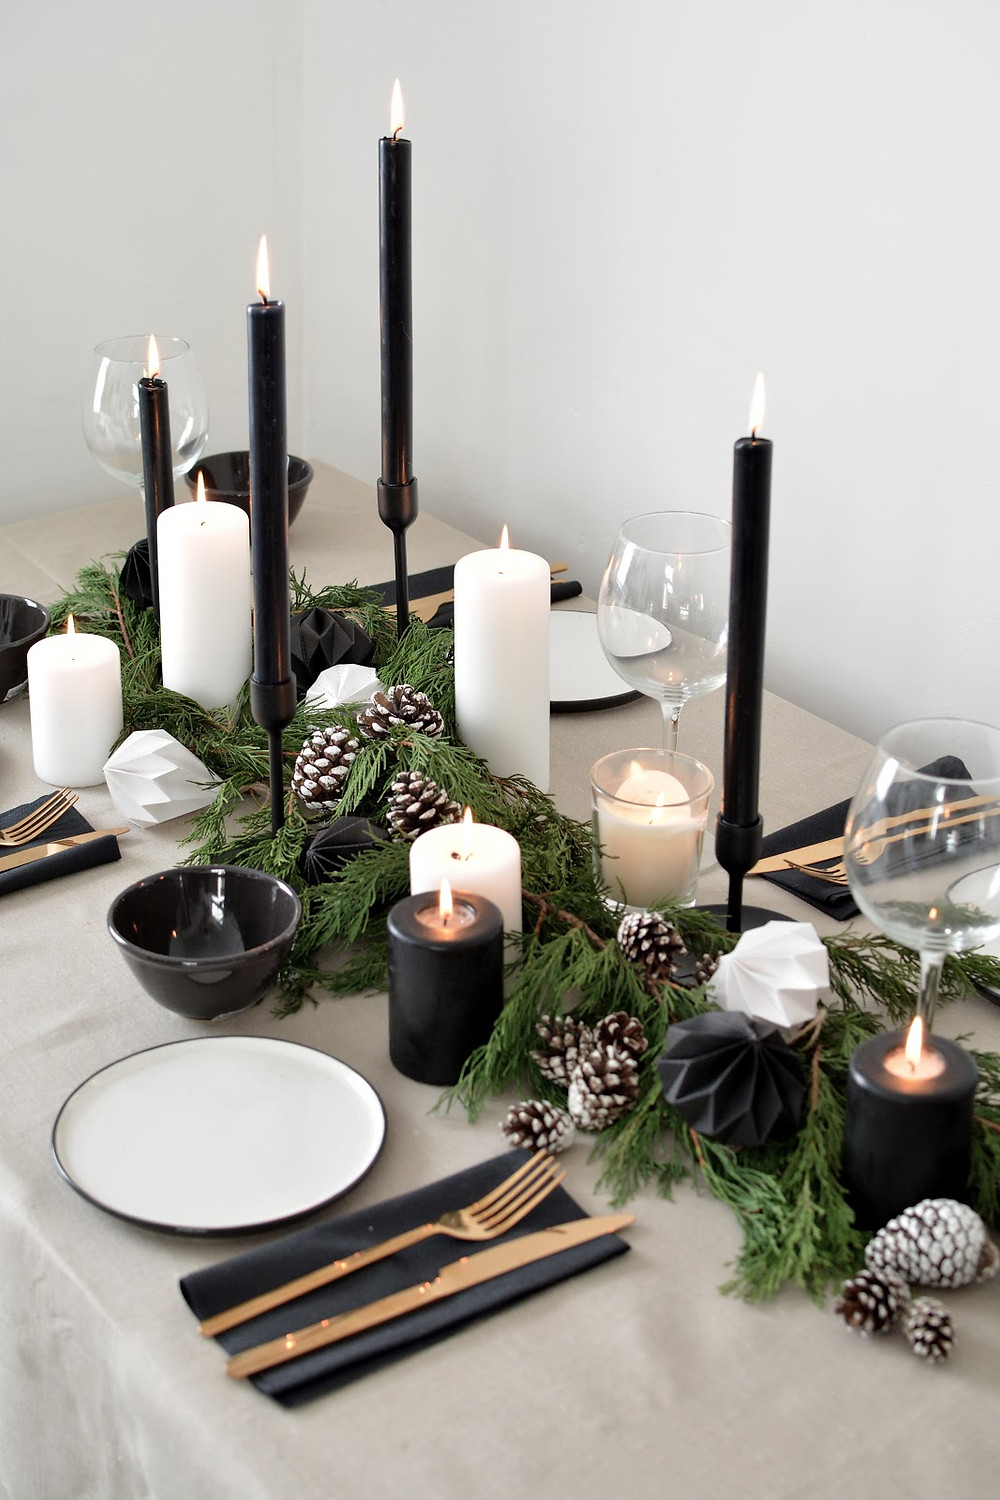 A minimal and modern Scandinavian nordic inspired Christmas holiday dining table styled with black candles, greenery, white candles, pine cones and black plates with gold utensils for a minimal and modern feel.